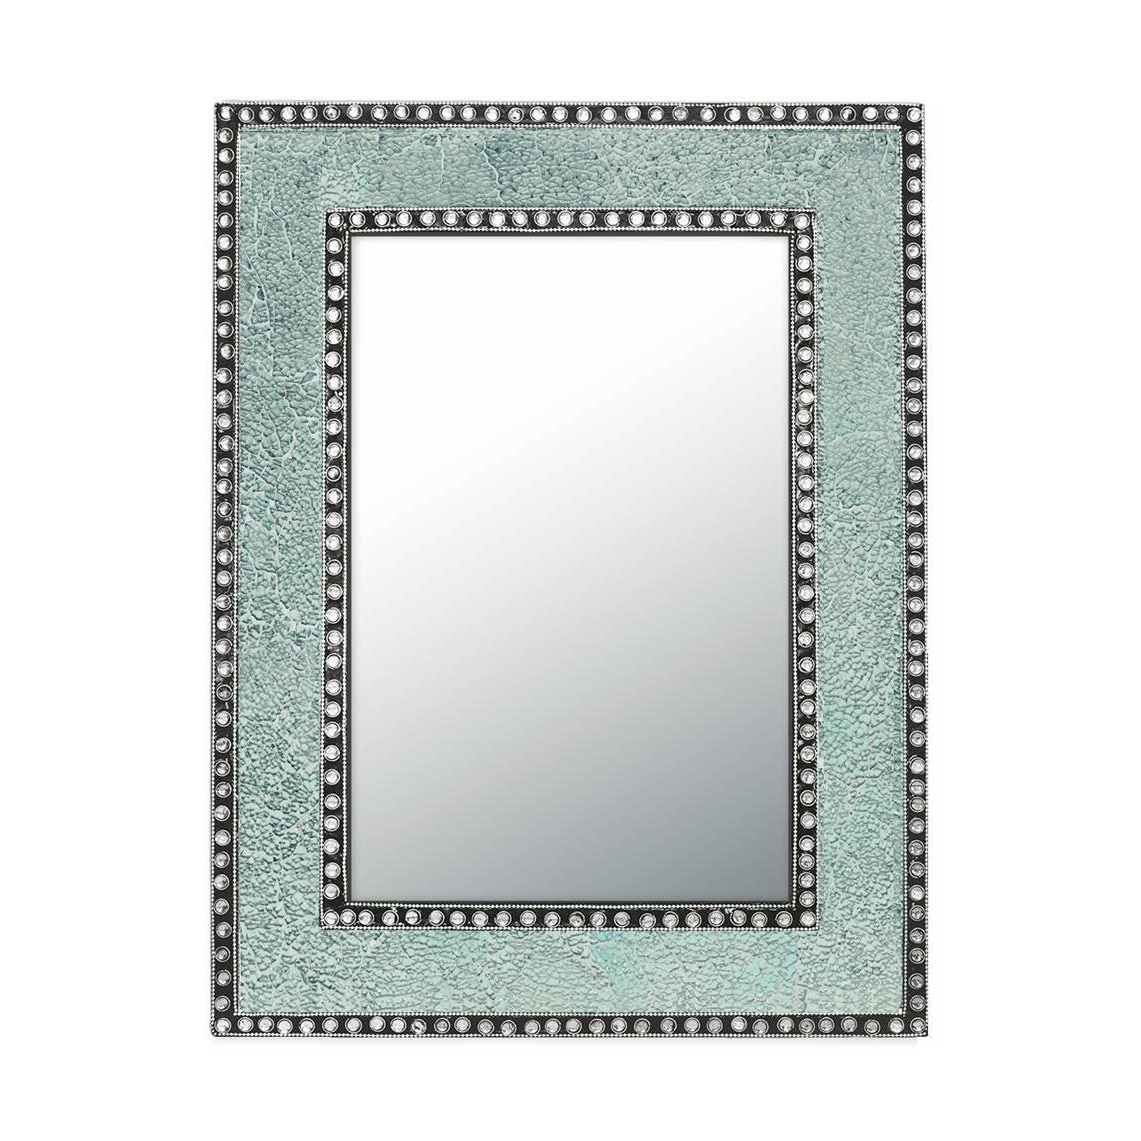 Glass Mosaic Wall Mirrors Pertaining To Favorite Crackled Glass Jewel Tone Mosaic Wall Mirror (View 16 of 20)